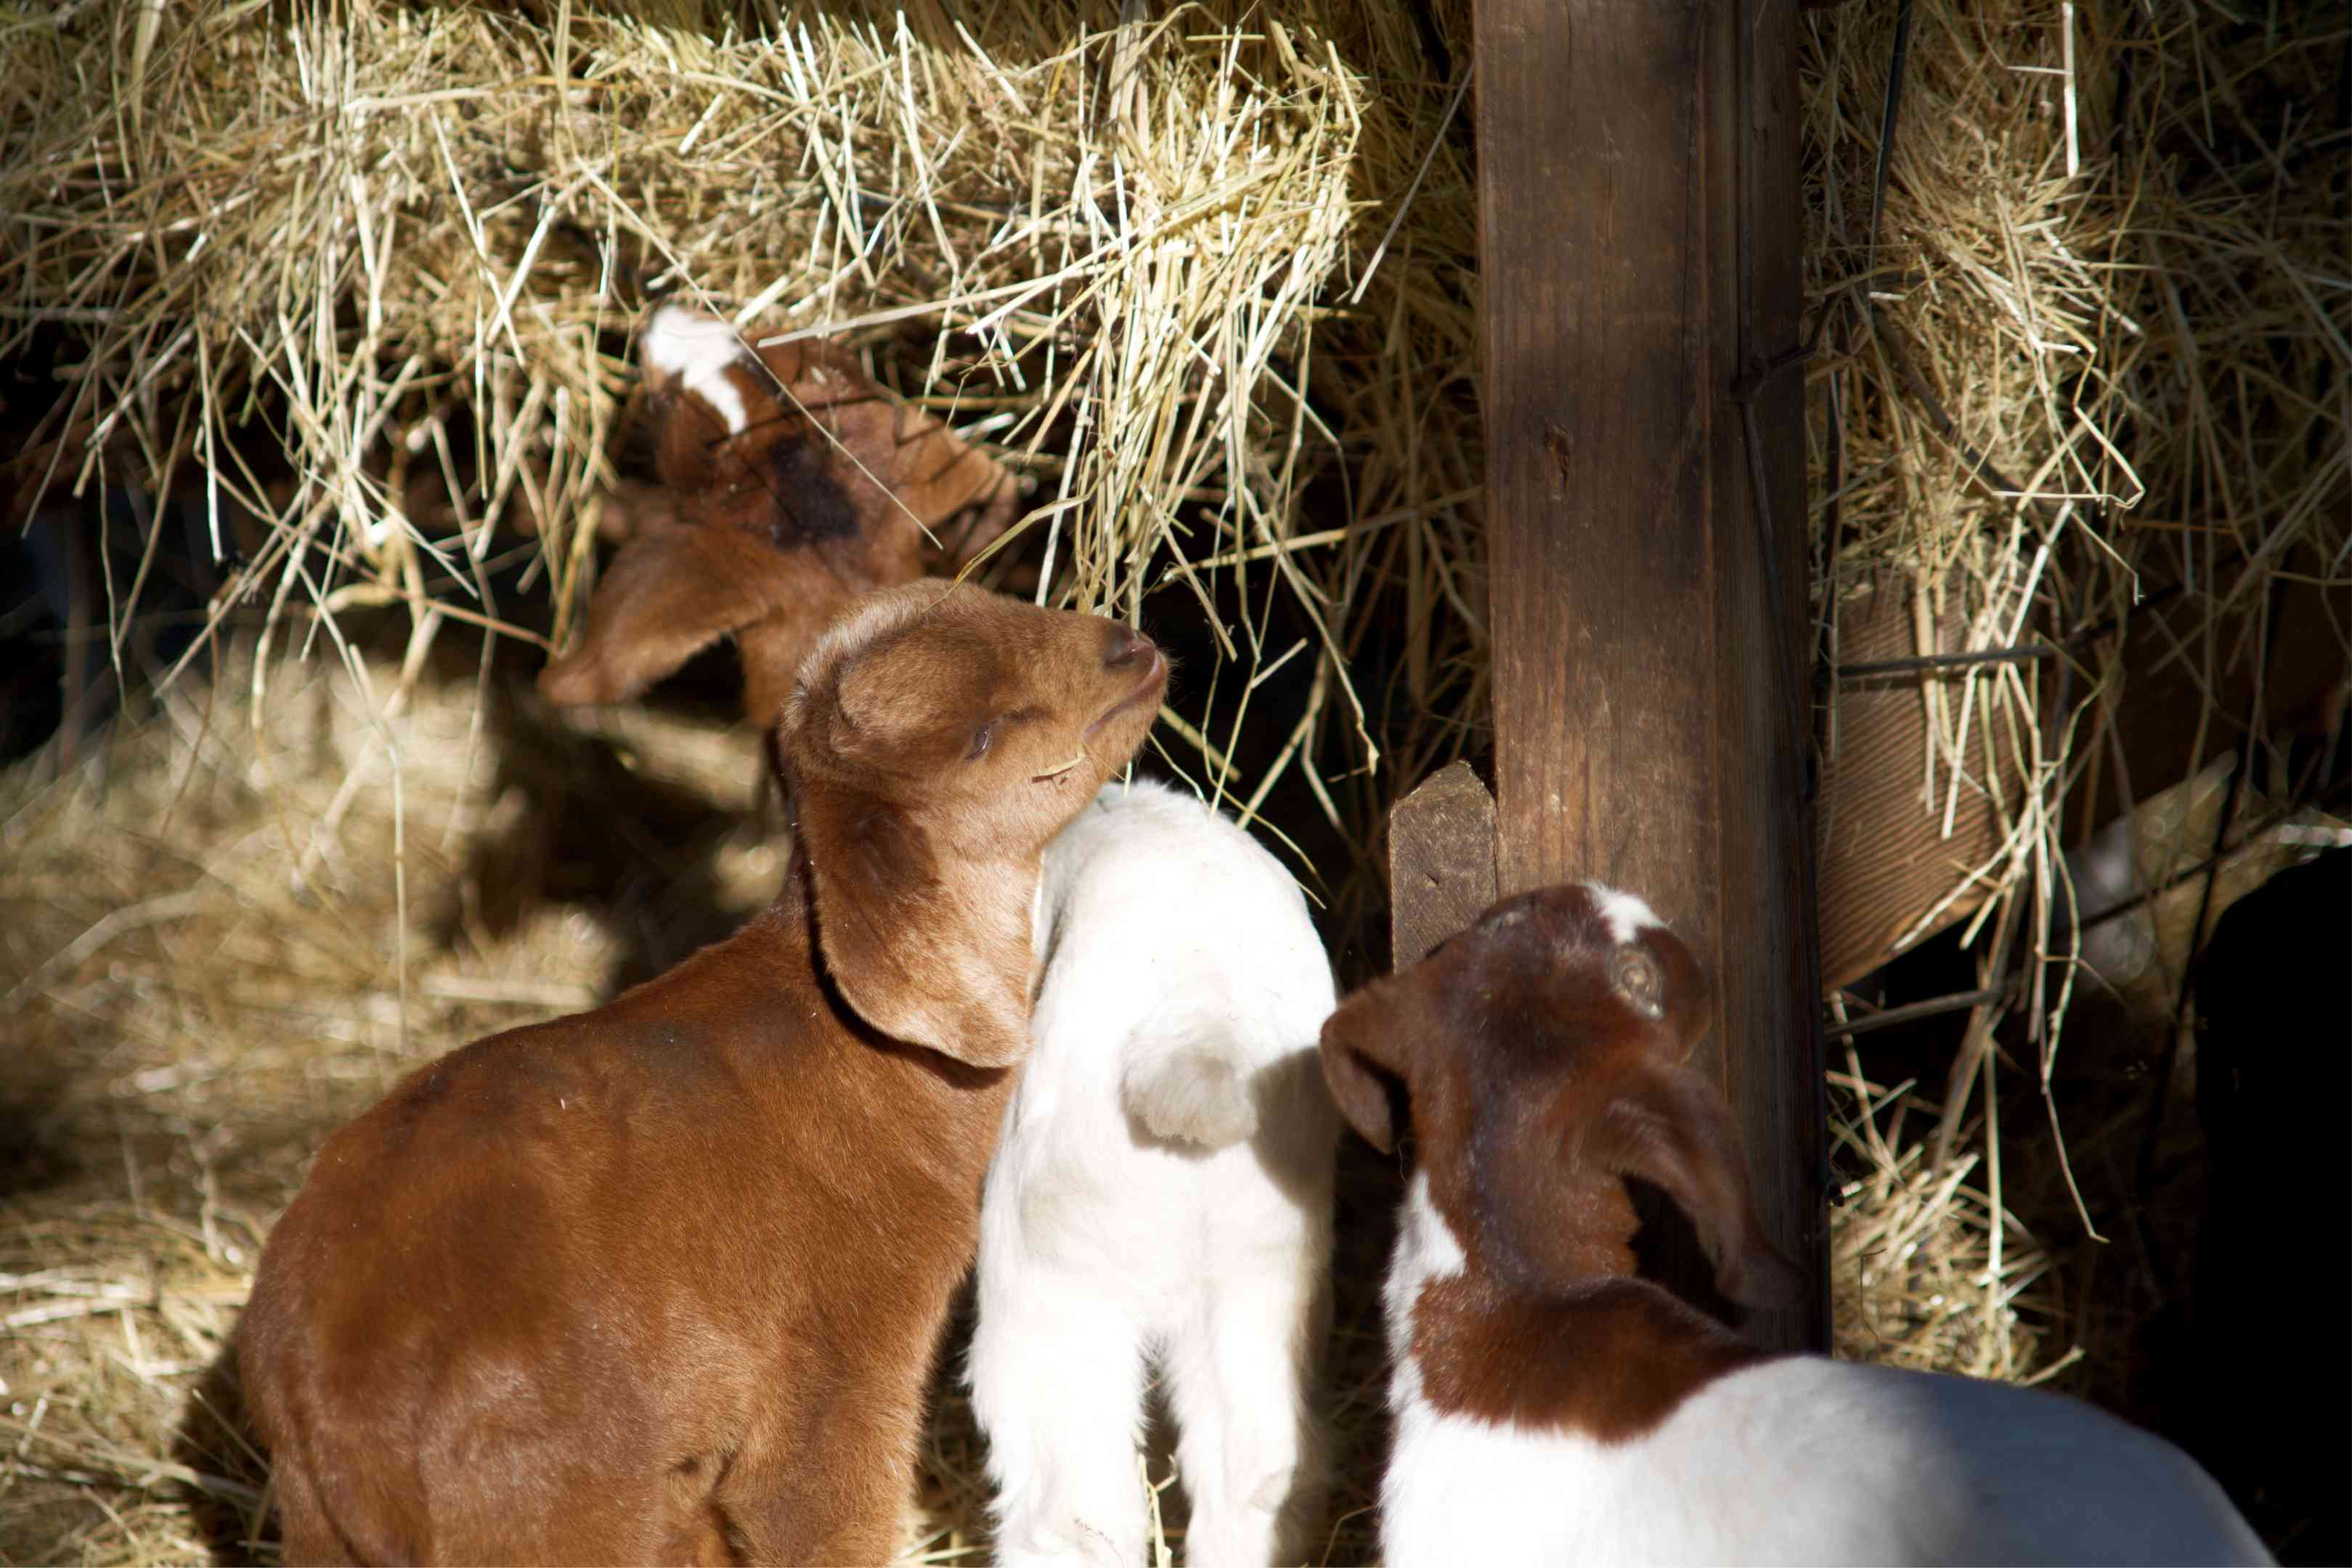 three brown and white baby goats eat hay in wooden barn